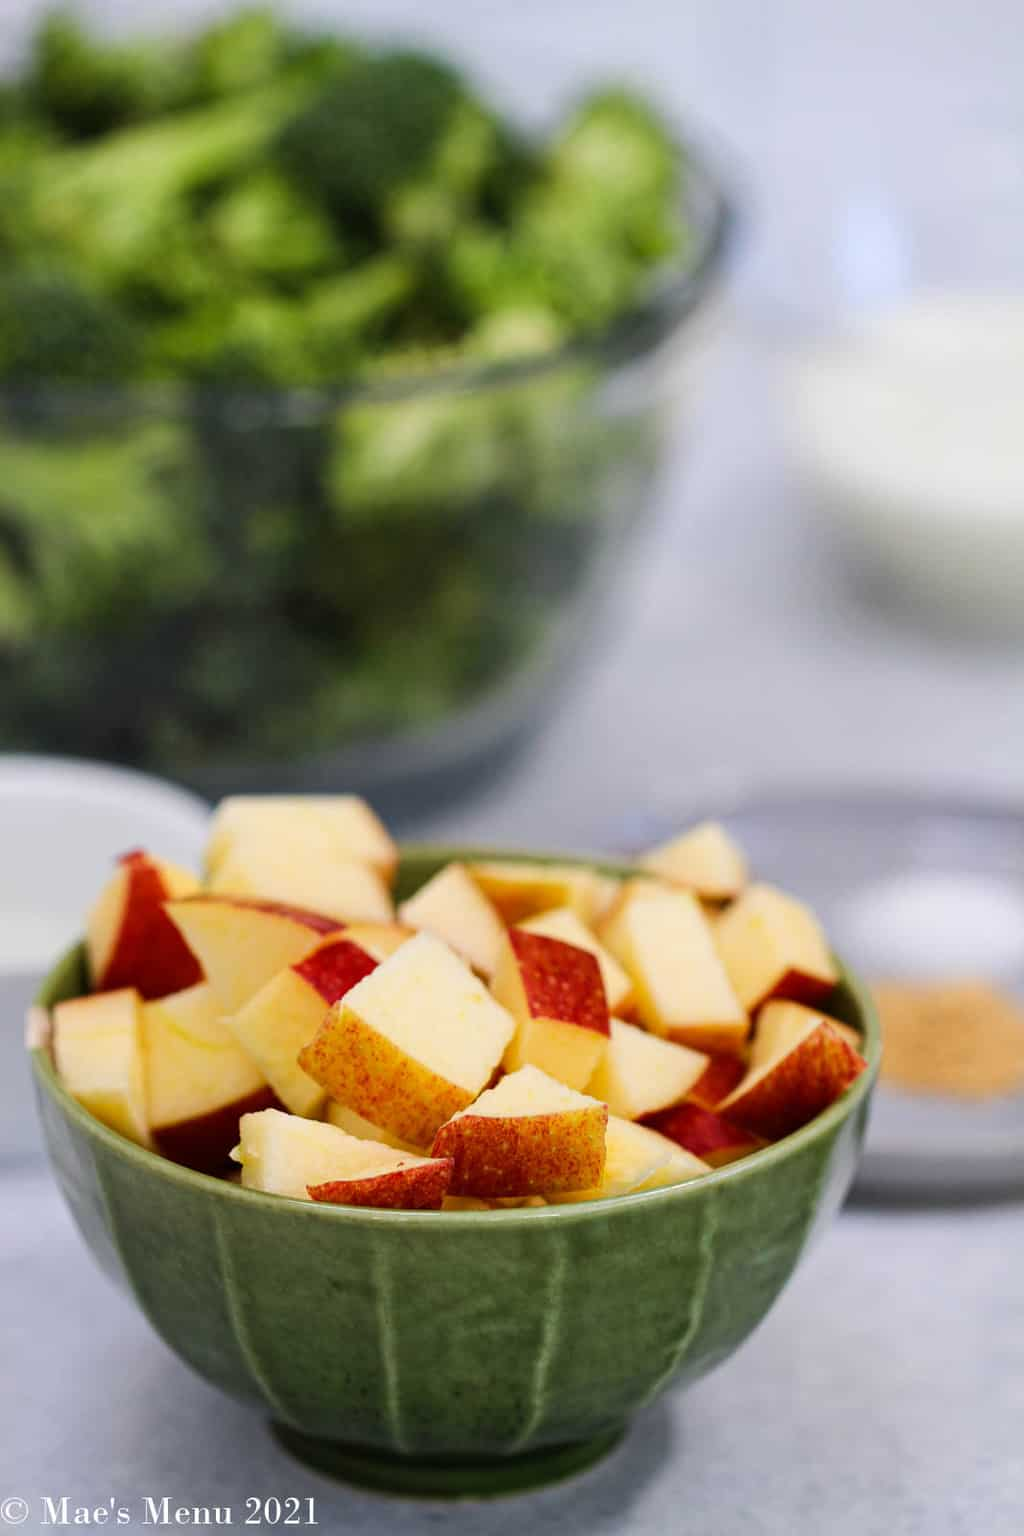 a small cup of chopped apple in front of the rest of the ingredients